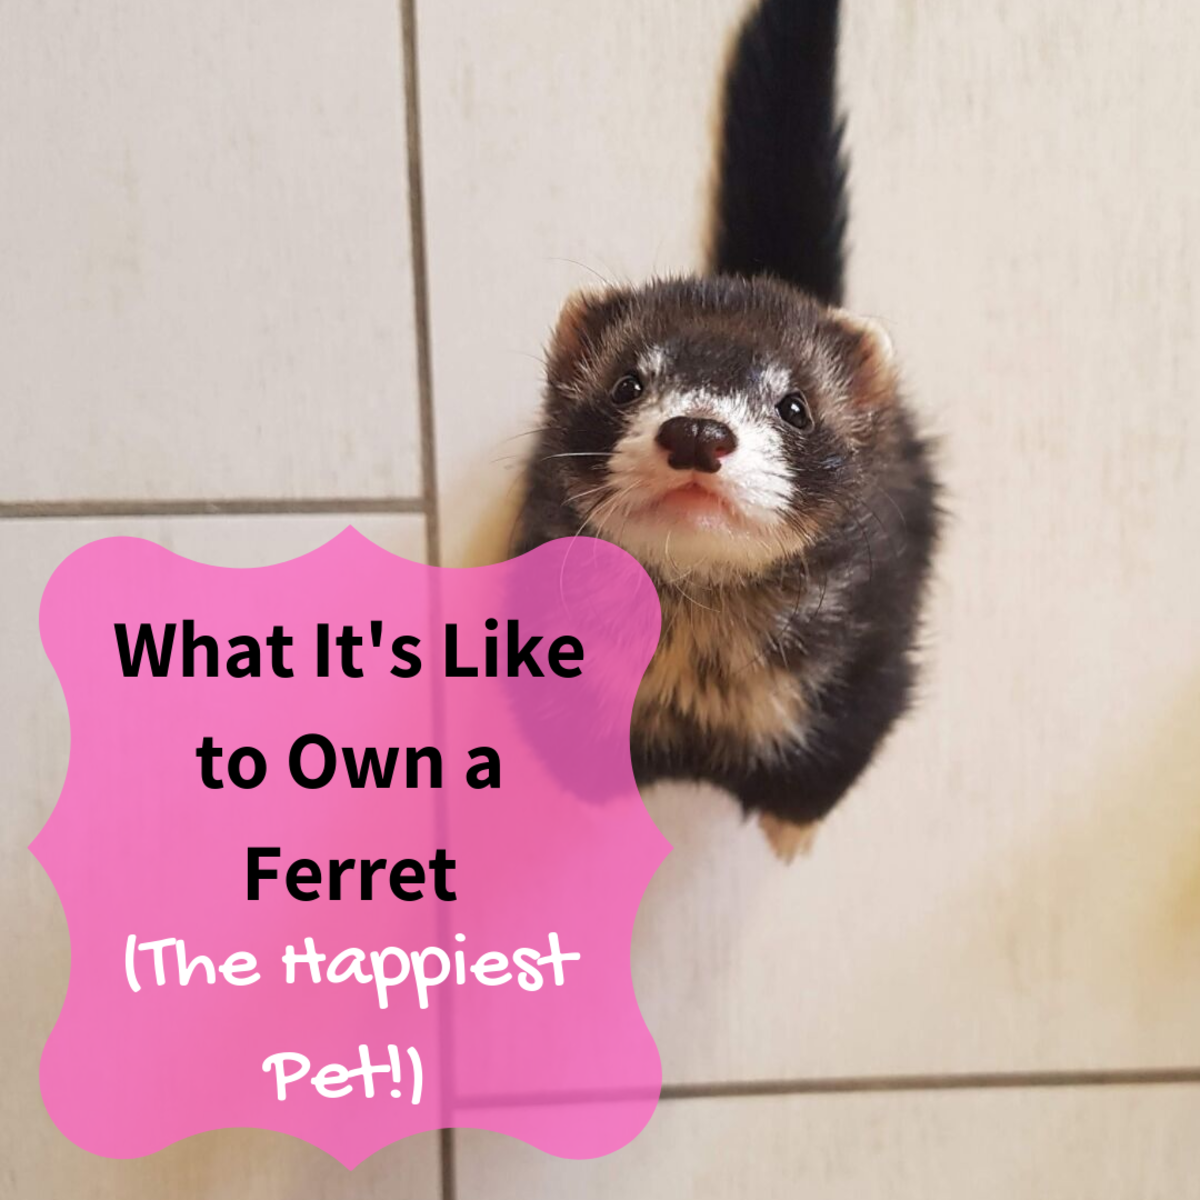 Meet the happy, exuberant ferret: a wonderful pet.